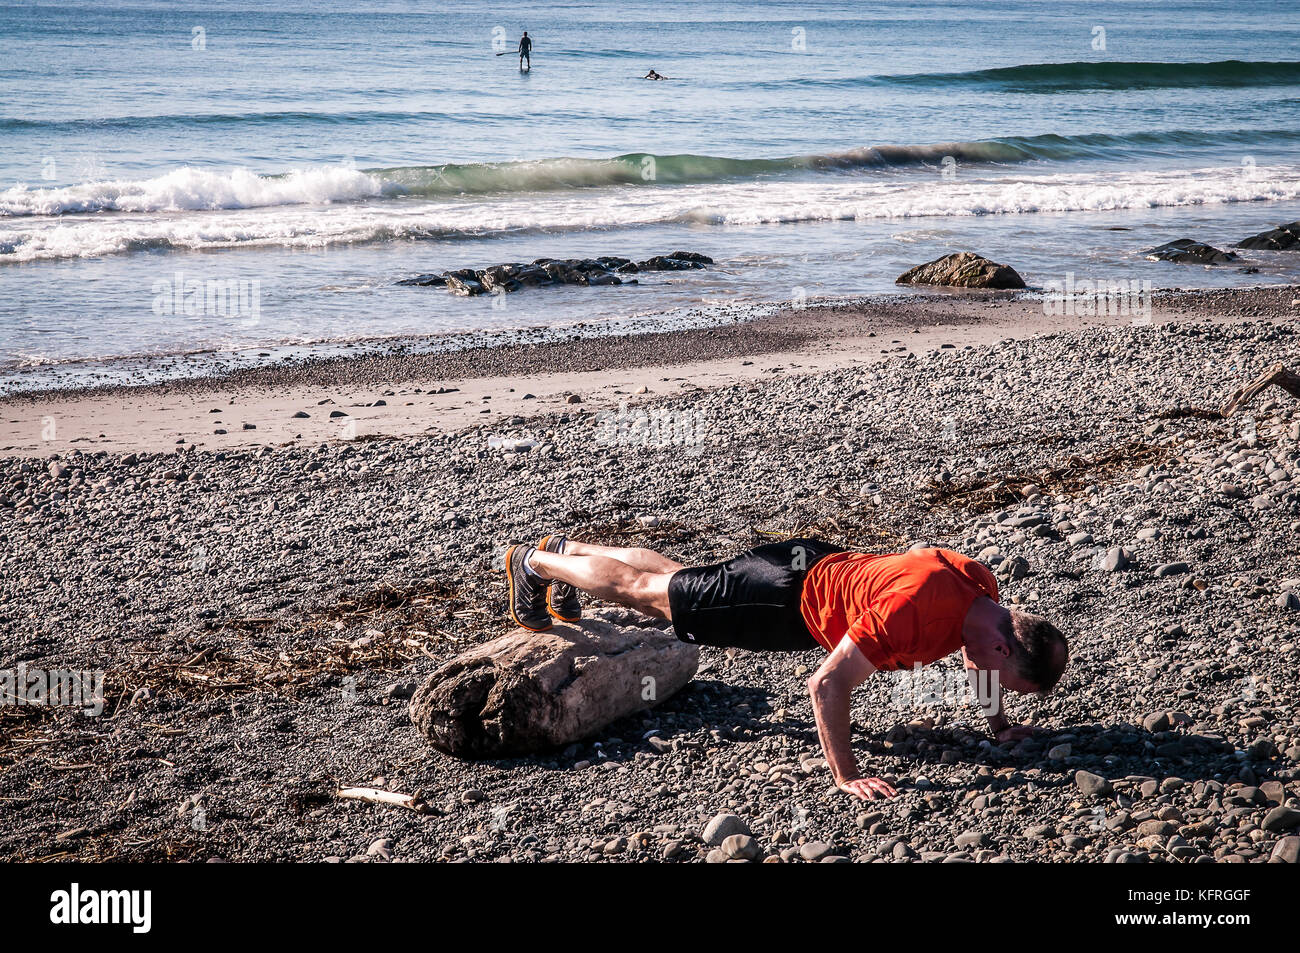 This man is working hard at his morning workout on this rocky beach,while these two surfers out on the ocean are - Stock Image